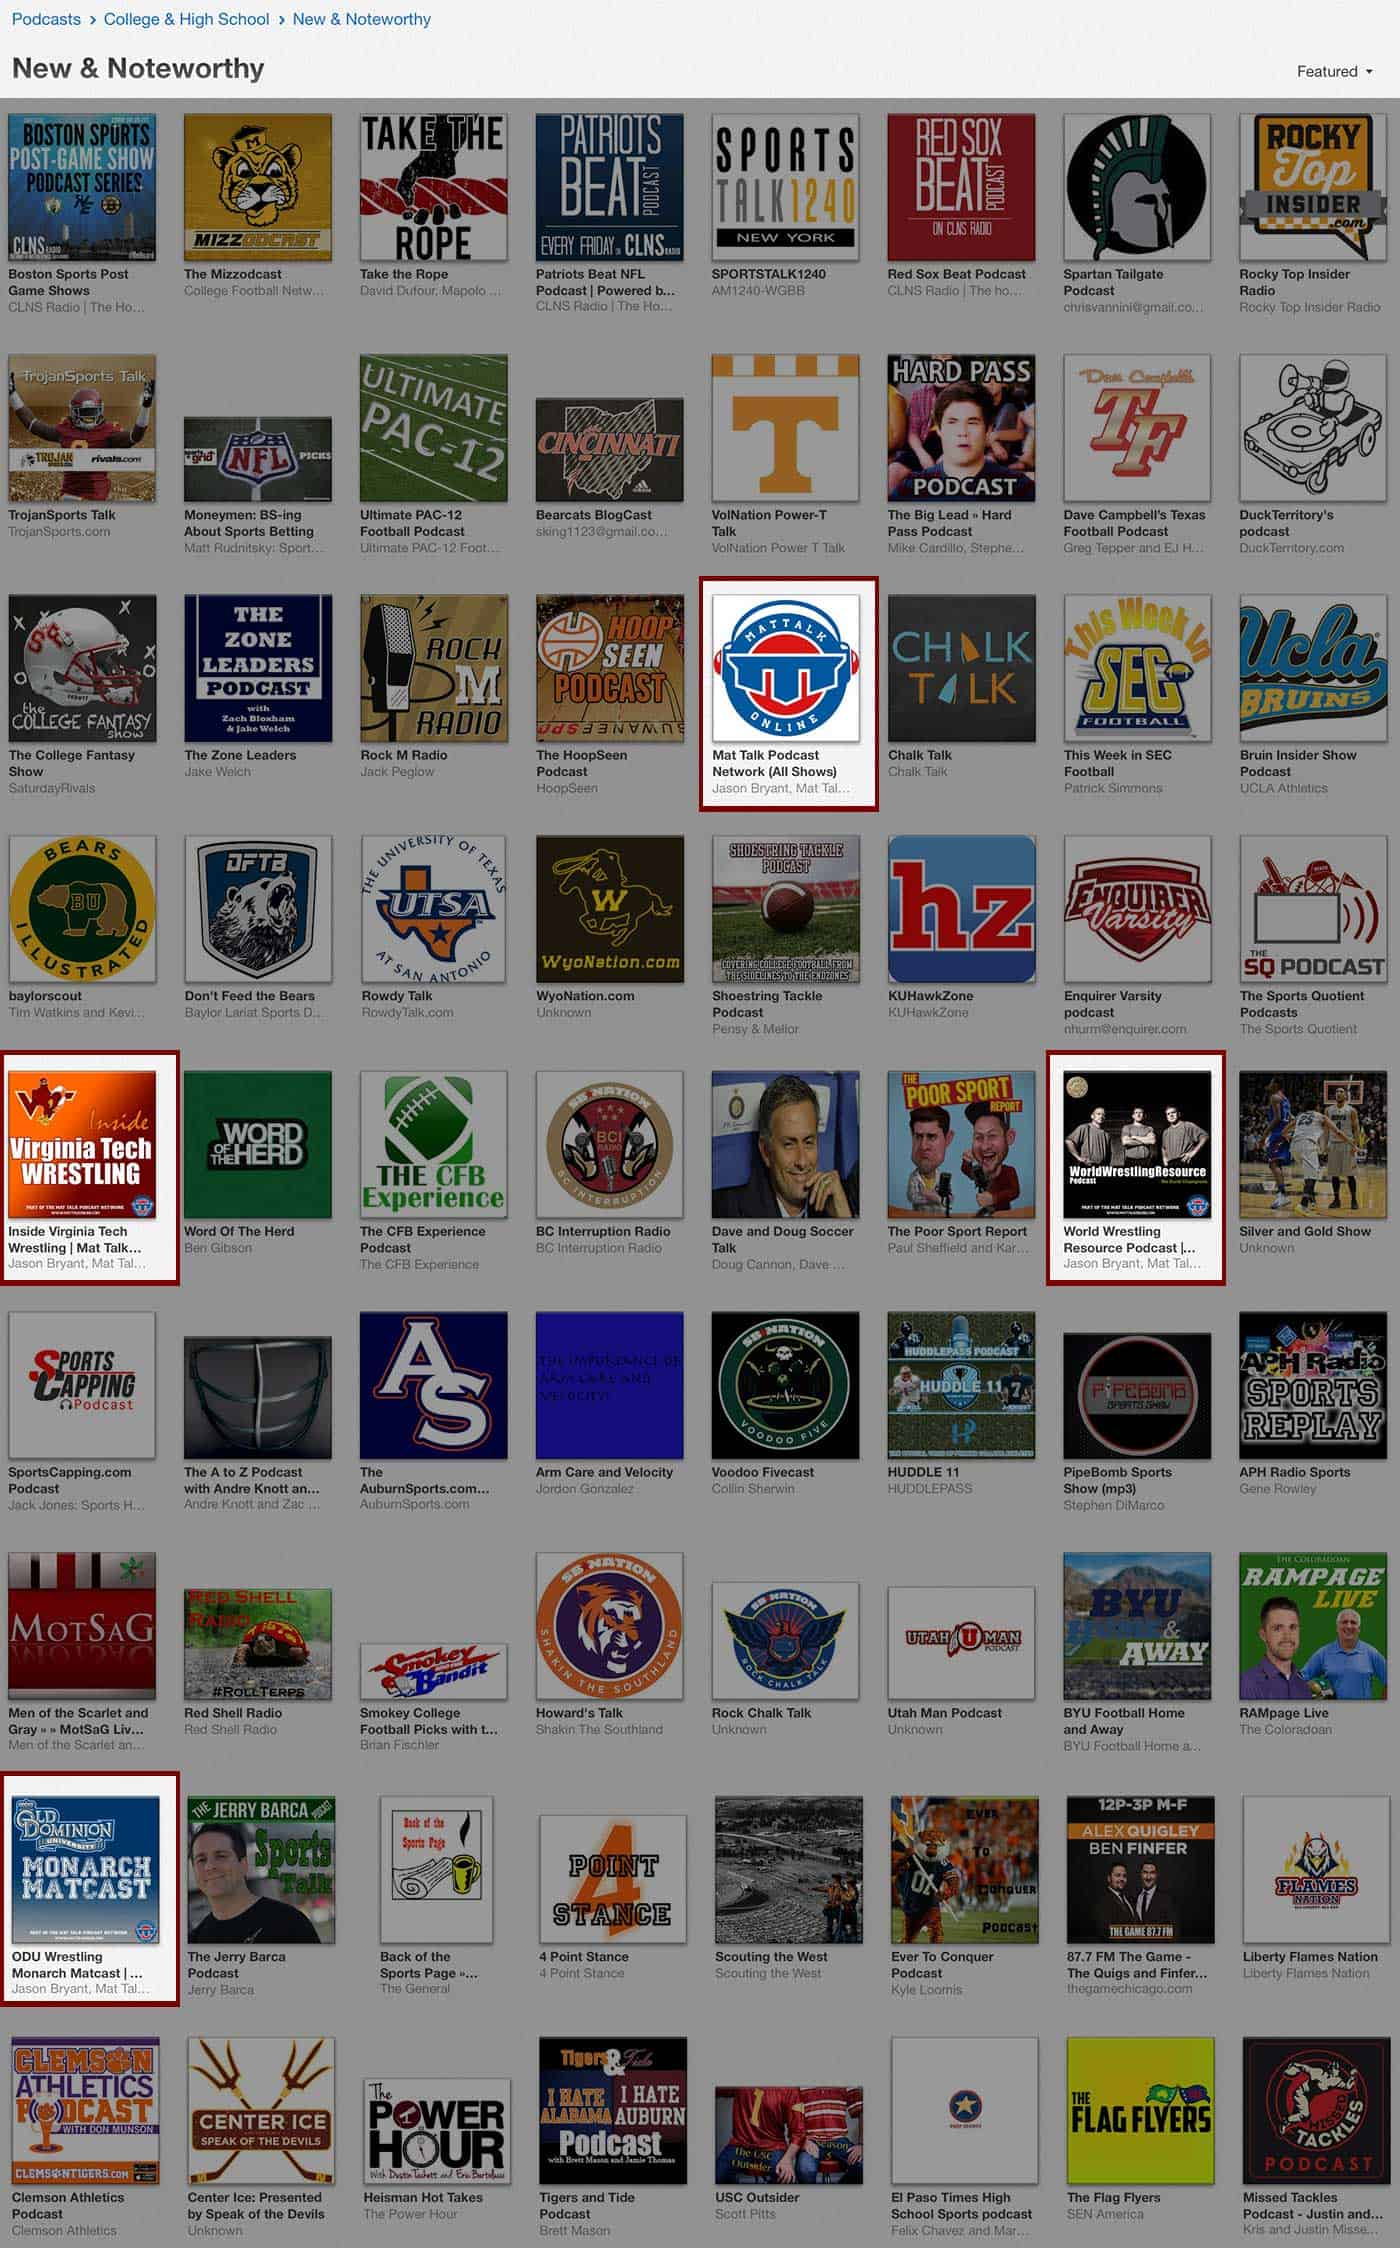 Blog: Mat Talk shows in iTunes' New & Noteworthy